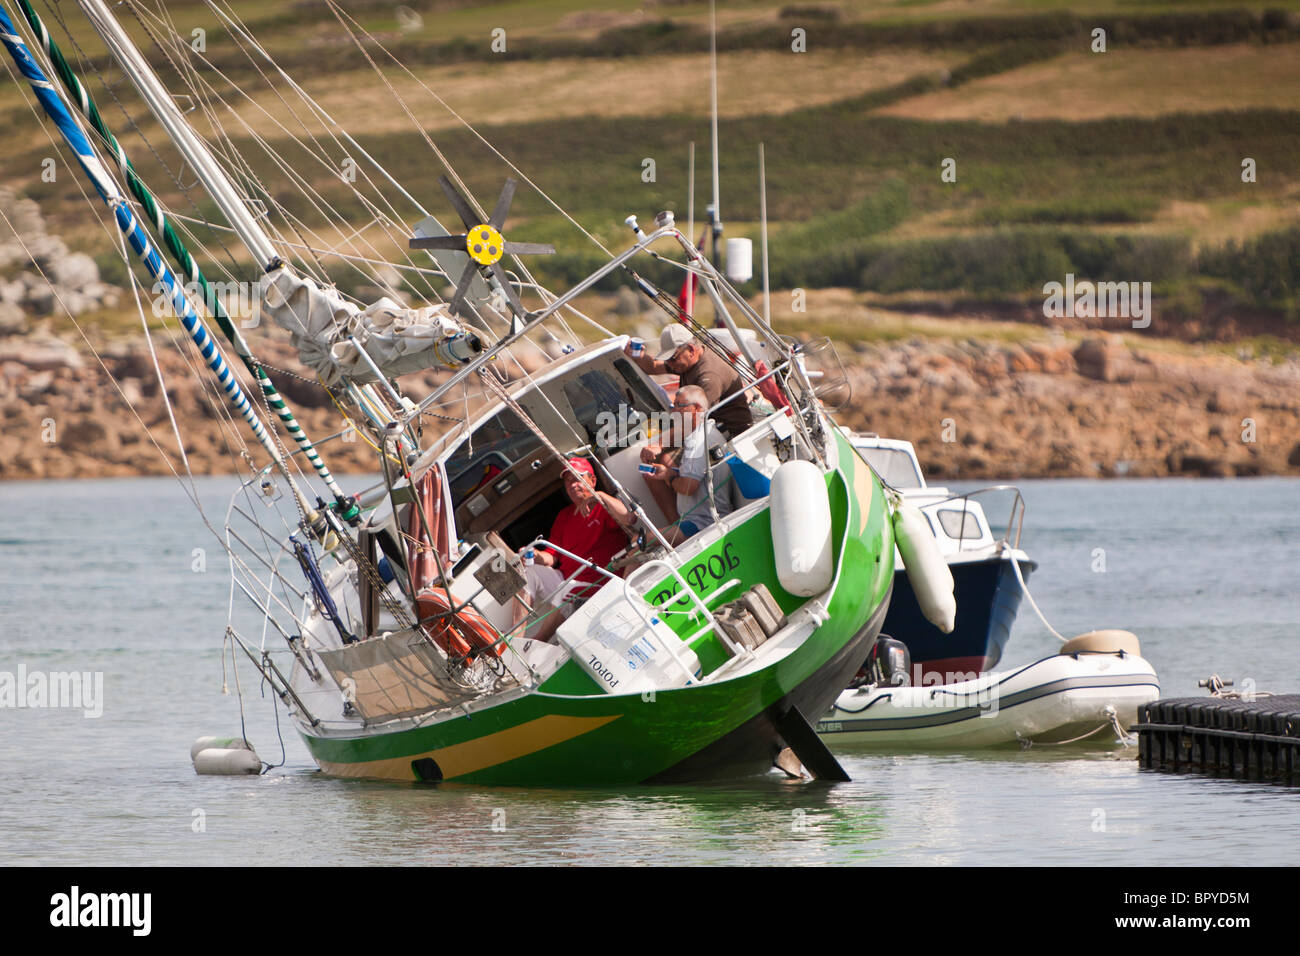 Yacht aground in Hugh Town St Mary's Isles of Scilly UK - Stock Image